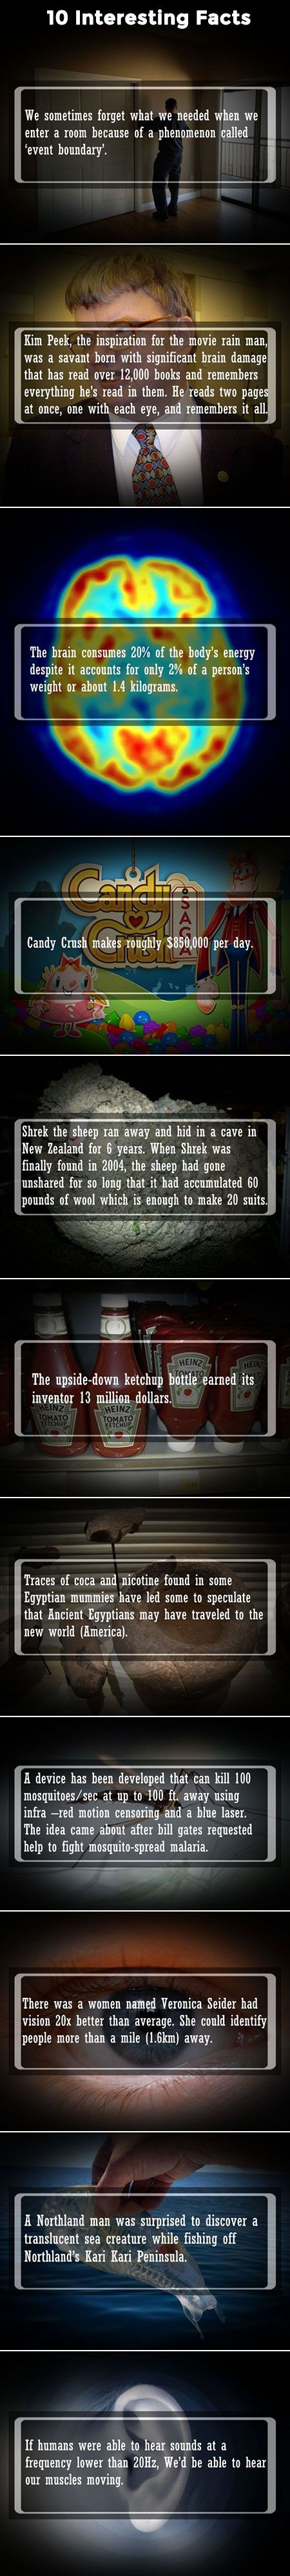 Time for some more interesting, yet true, facts that will get you thinking.